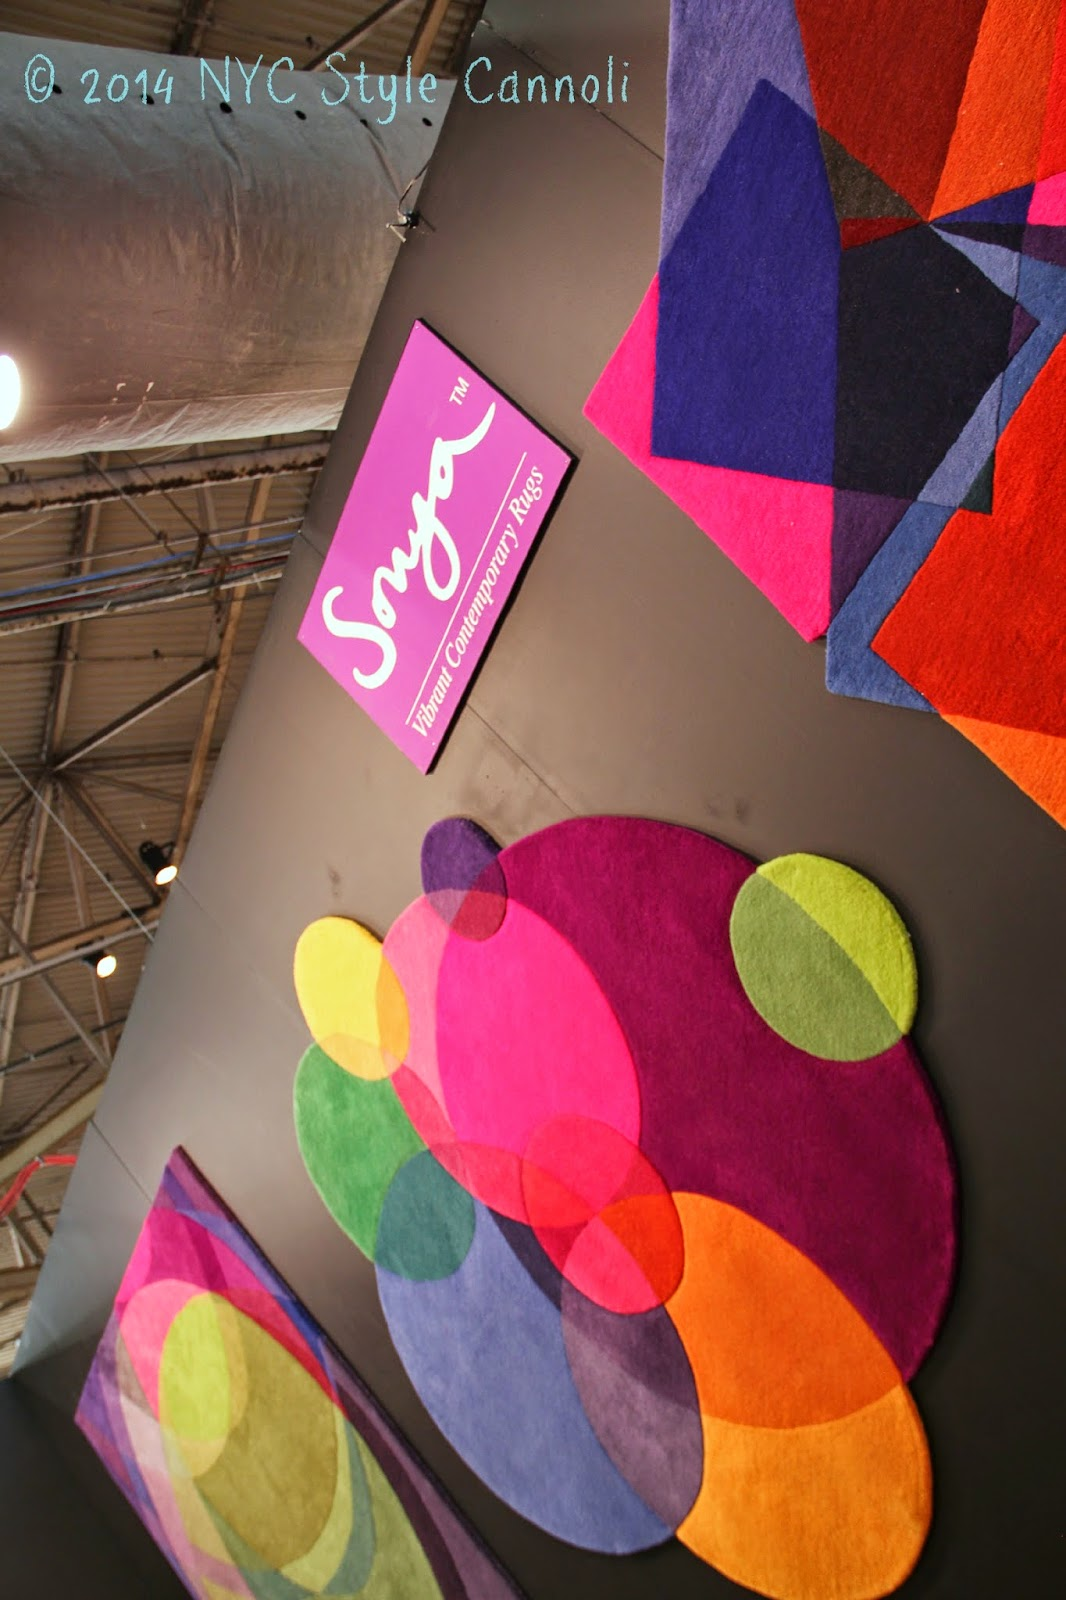 nyc style and a little cannoli sonya vibrant contemporary rugs i found these amazing rugs at the 2014 architectural digest home design show since i am a huge fan of color i thought they were fabulous